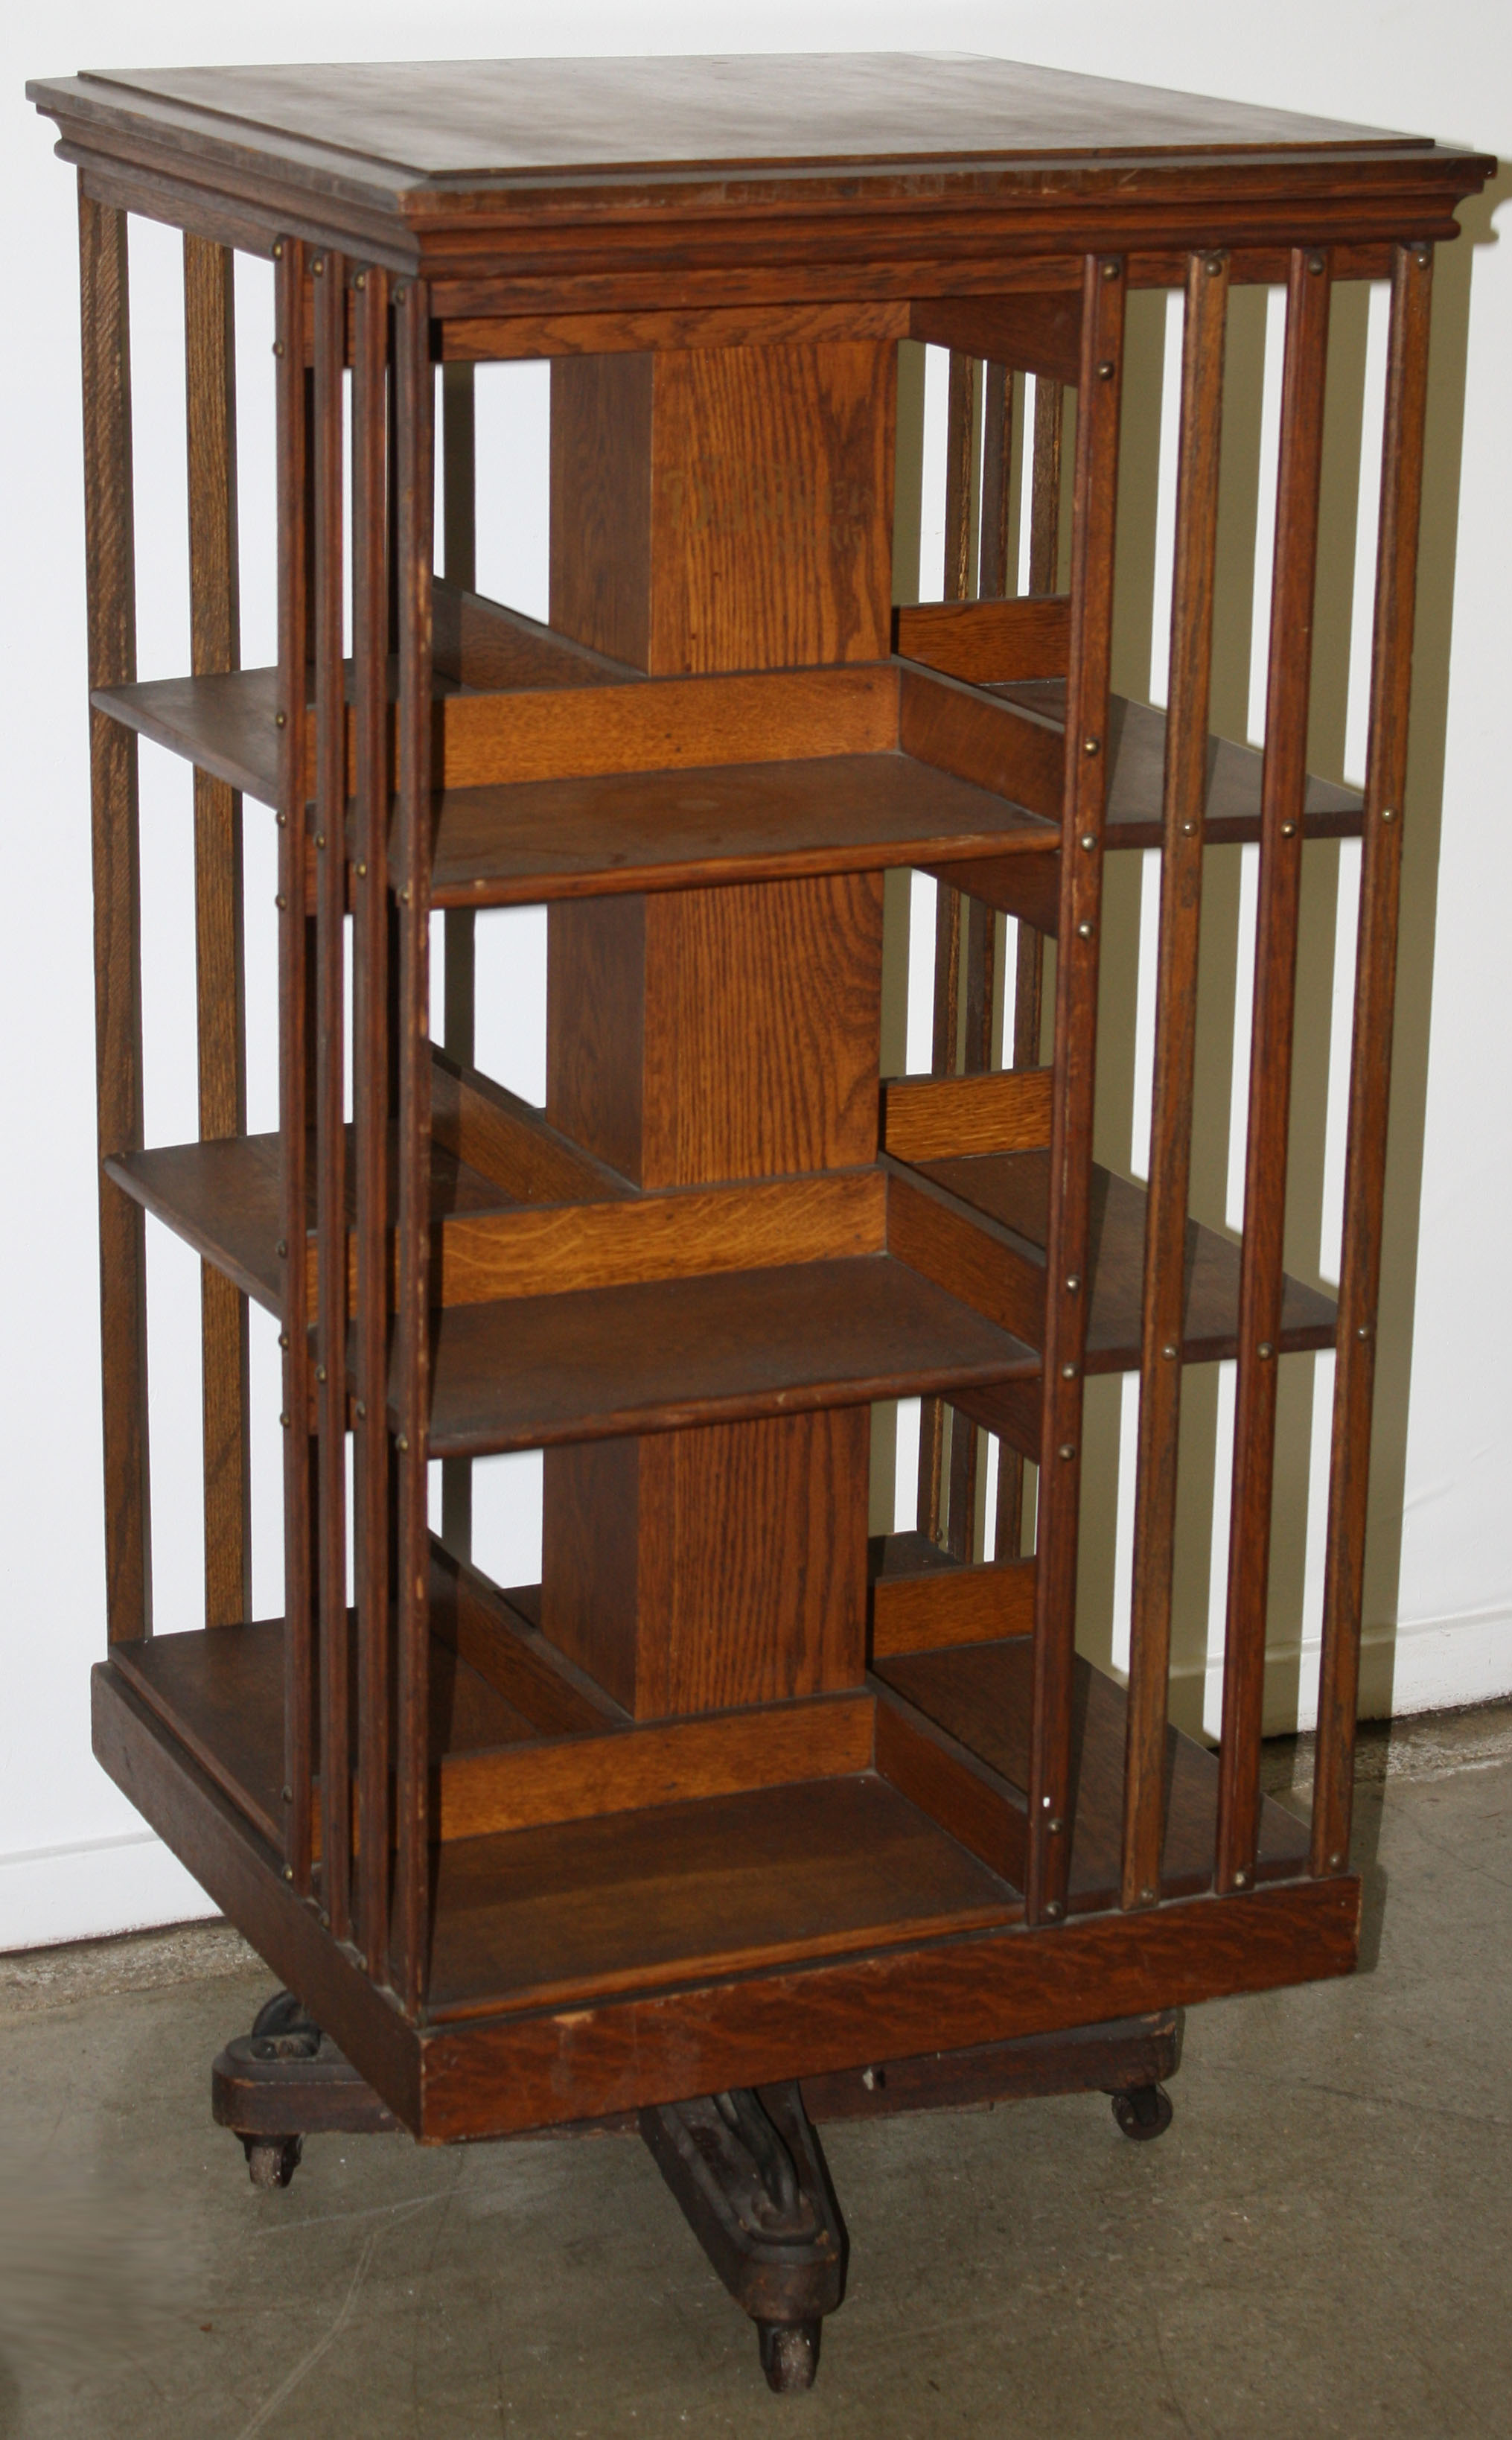 revolving chair with net co lift accident oak bookcase jpg merrill 39s auction